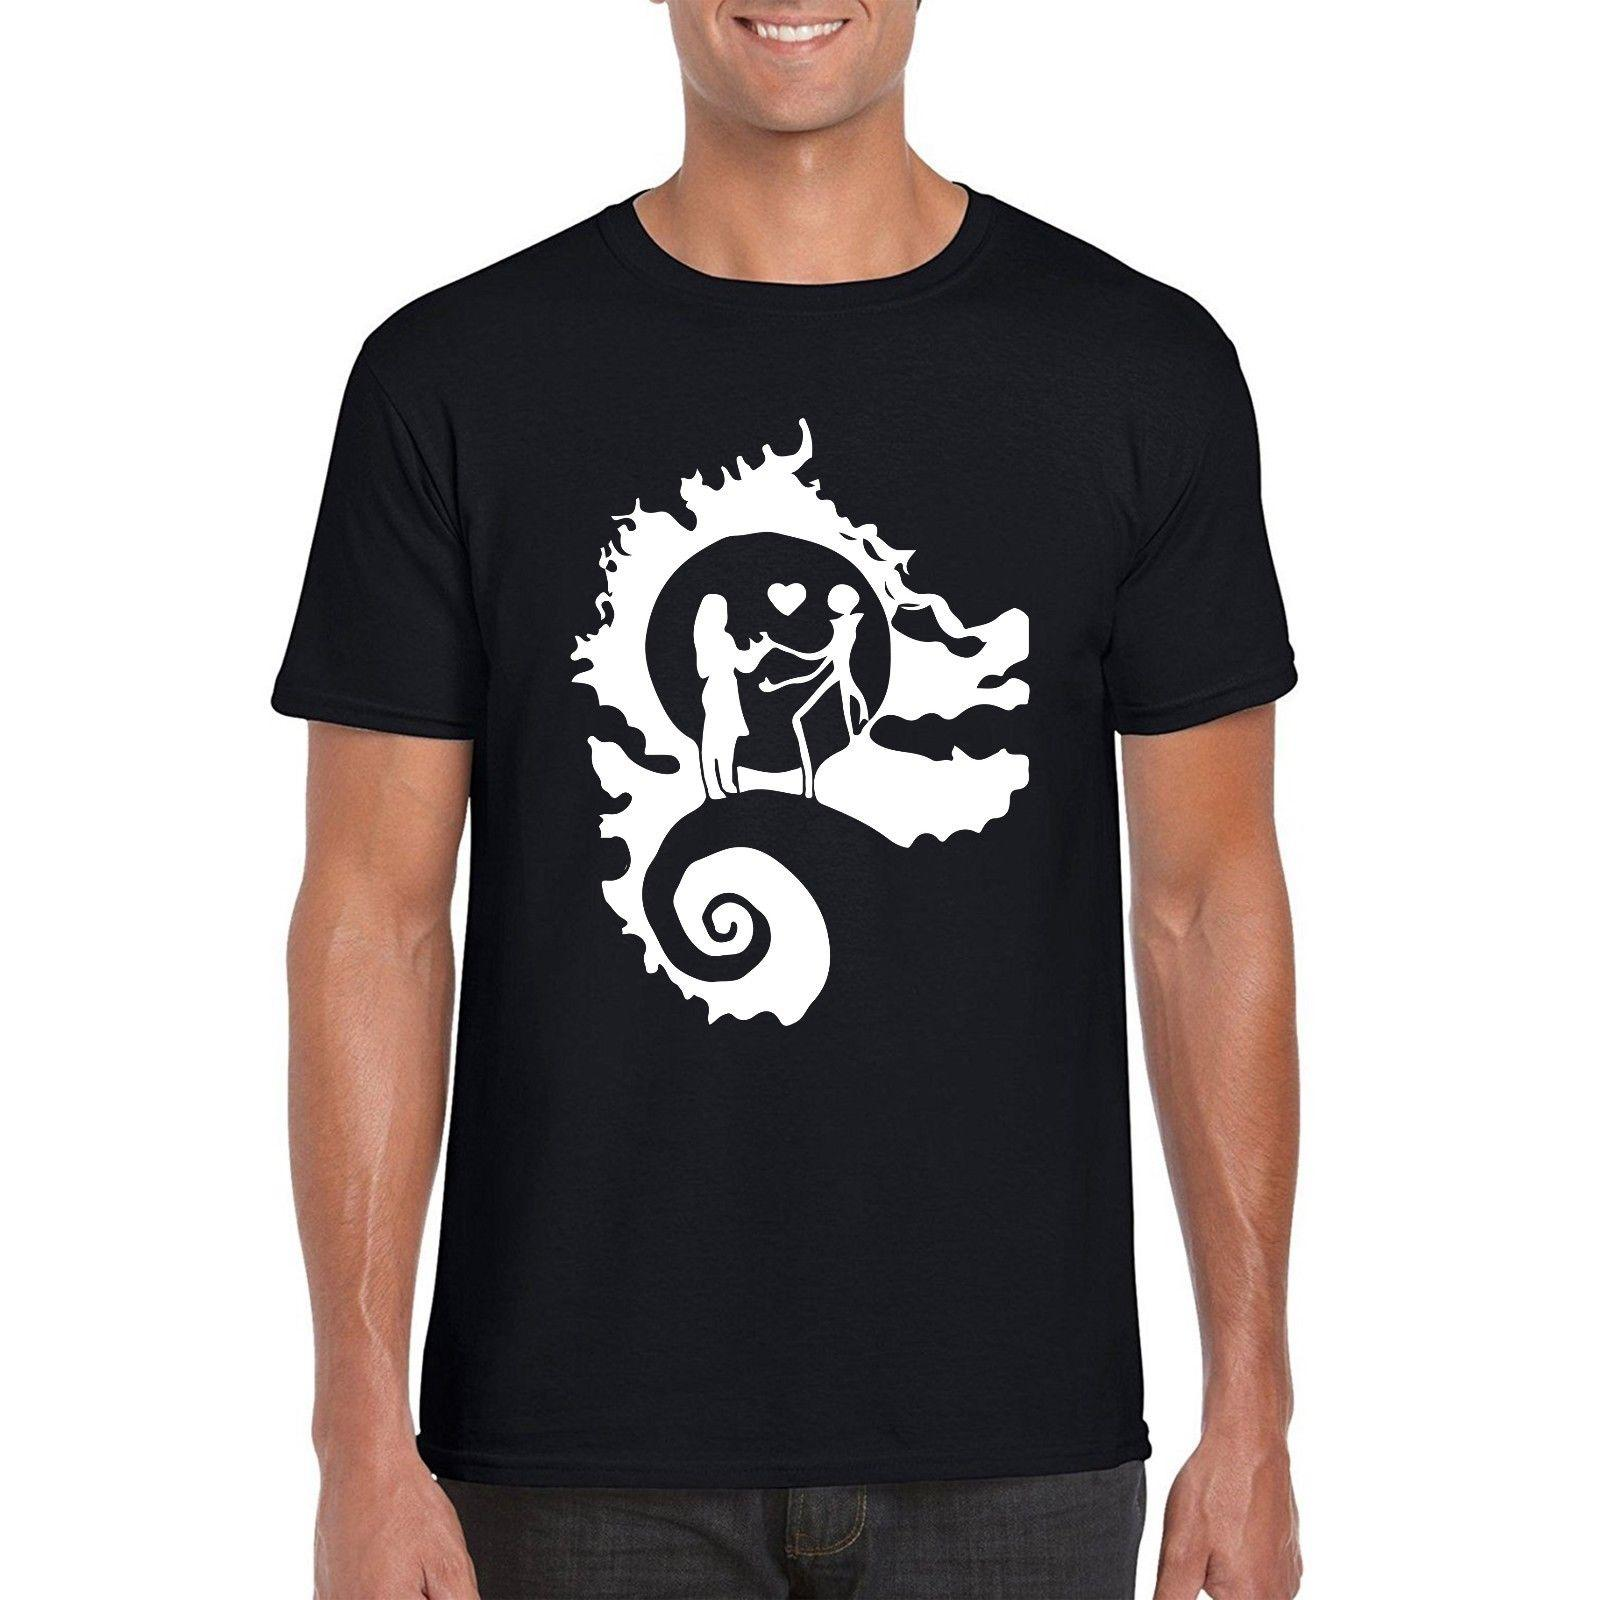 Jack Skellington T Shirt, Nightmare Before Christmas Inspired Parody ...